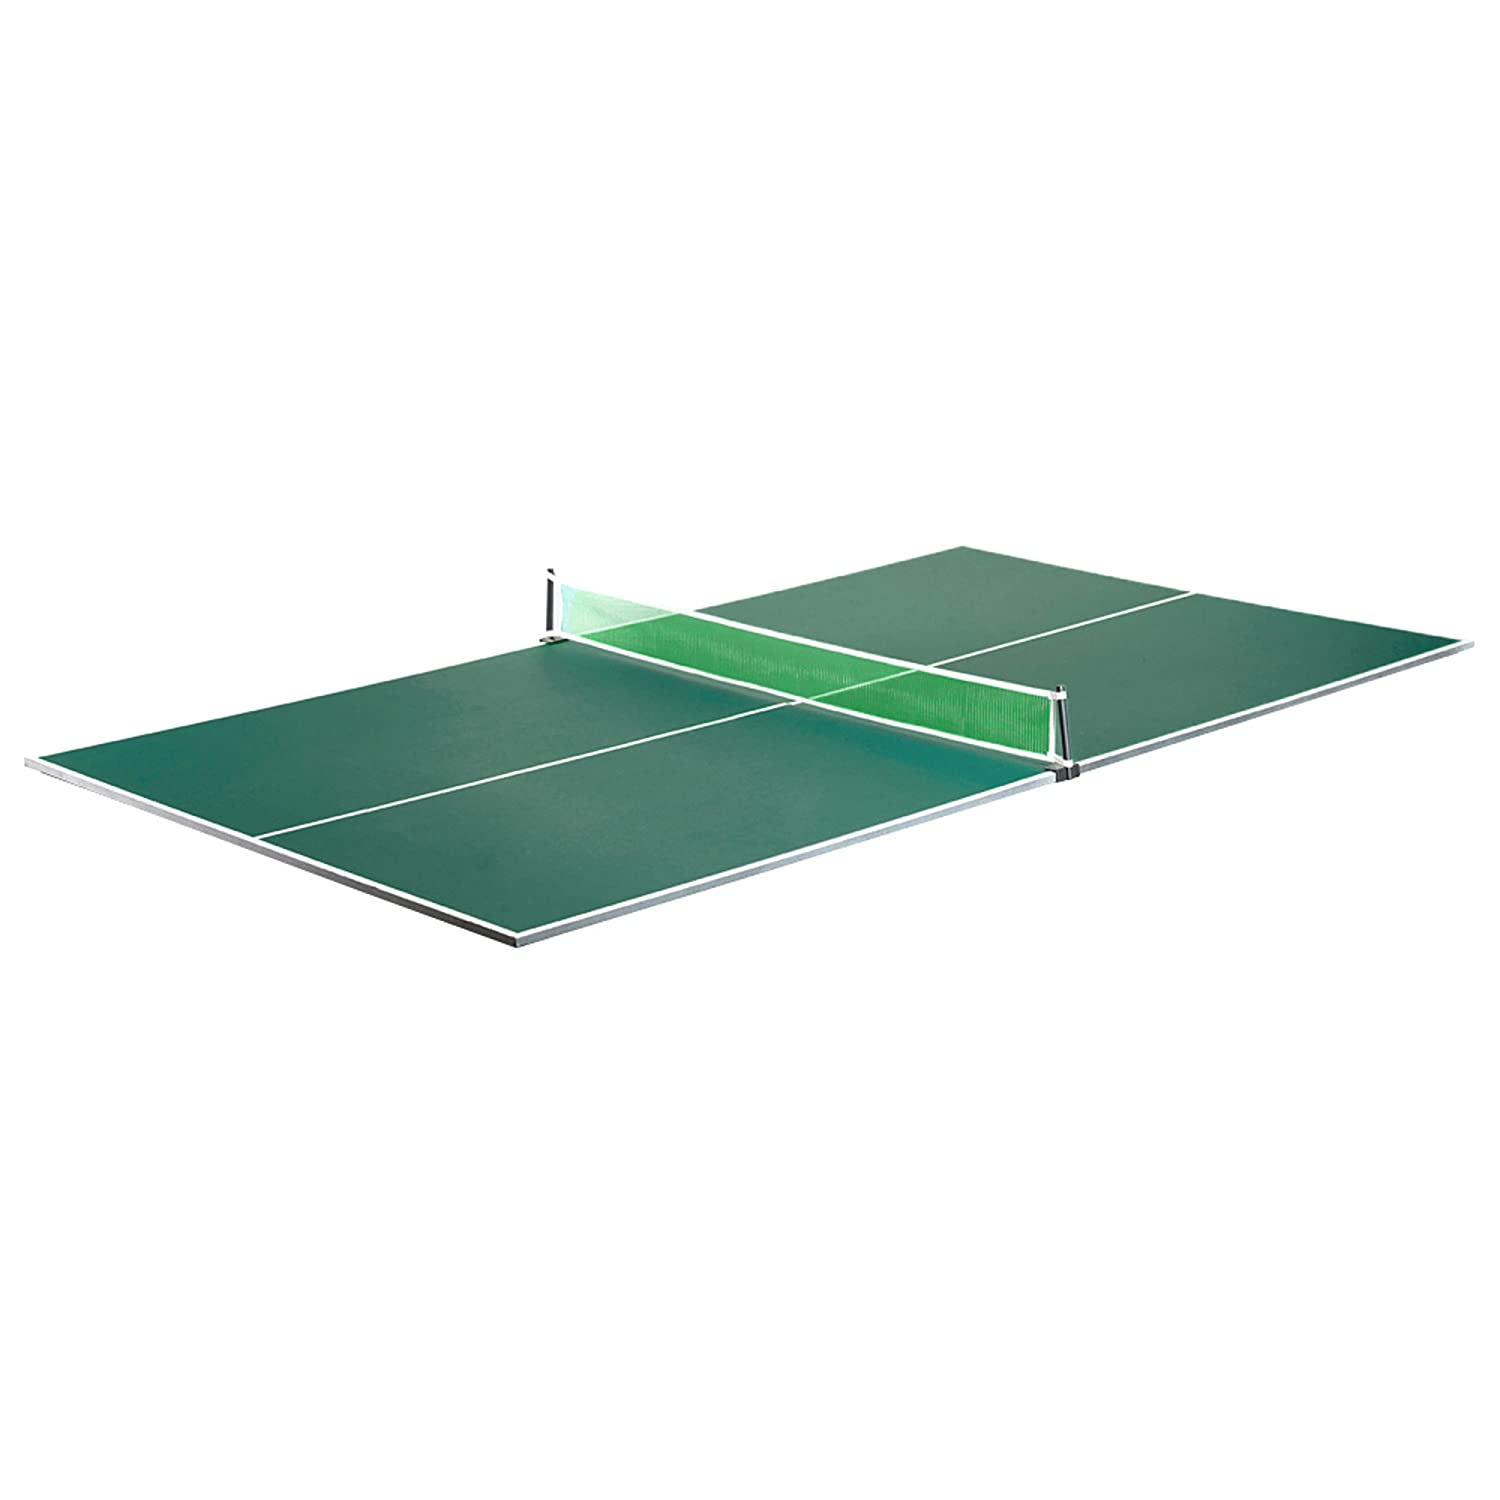 Hathaway BG2323 Quick Set Conversion Table Tennis Top for Pool Tables